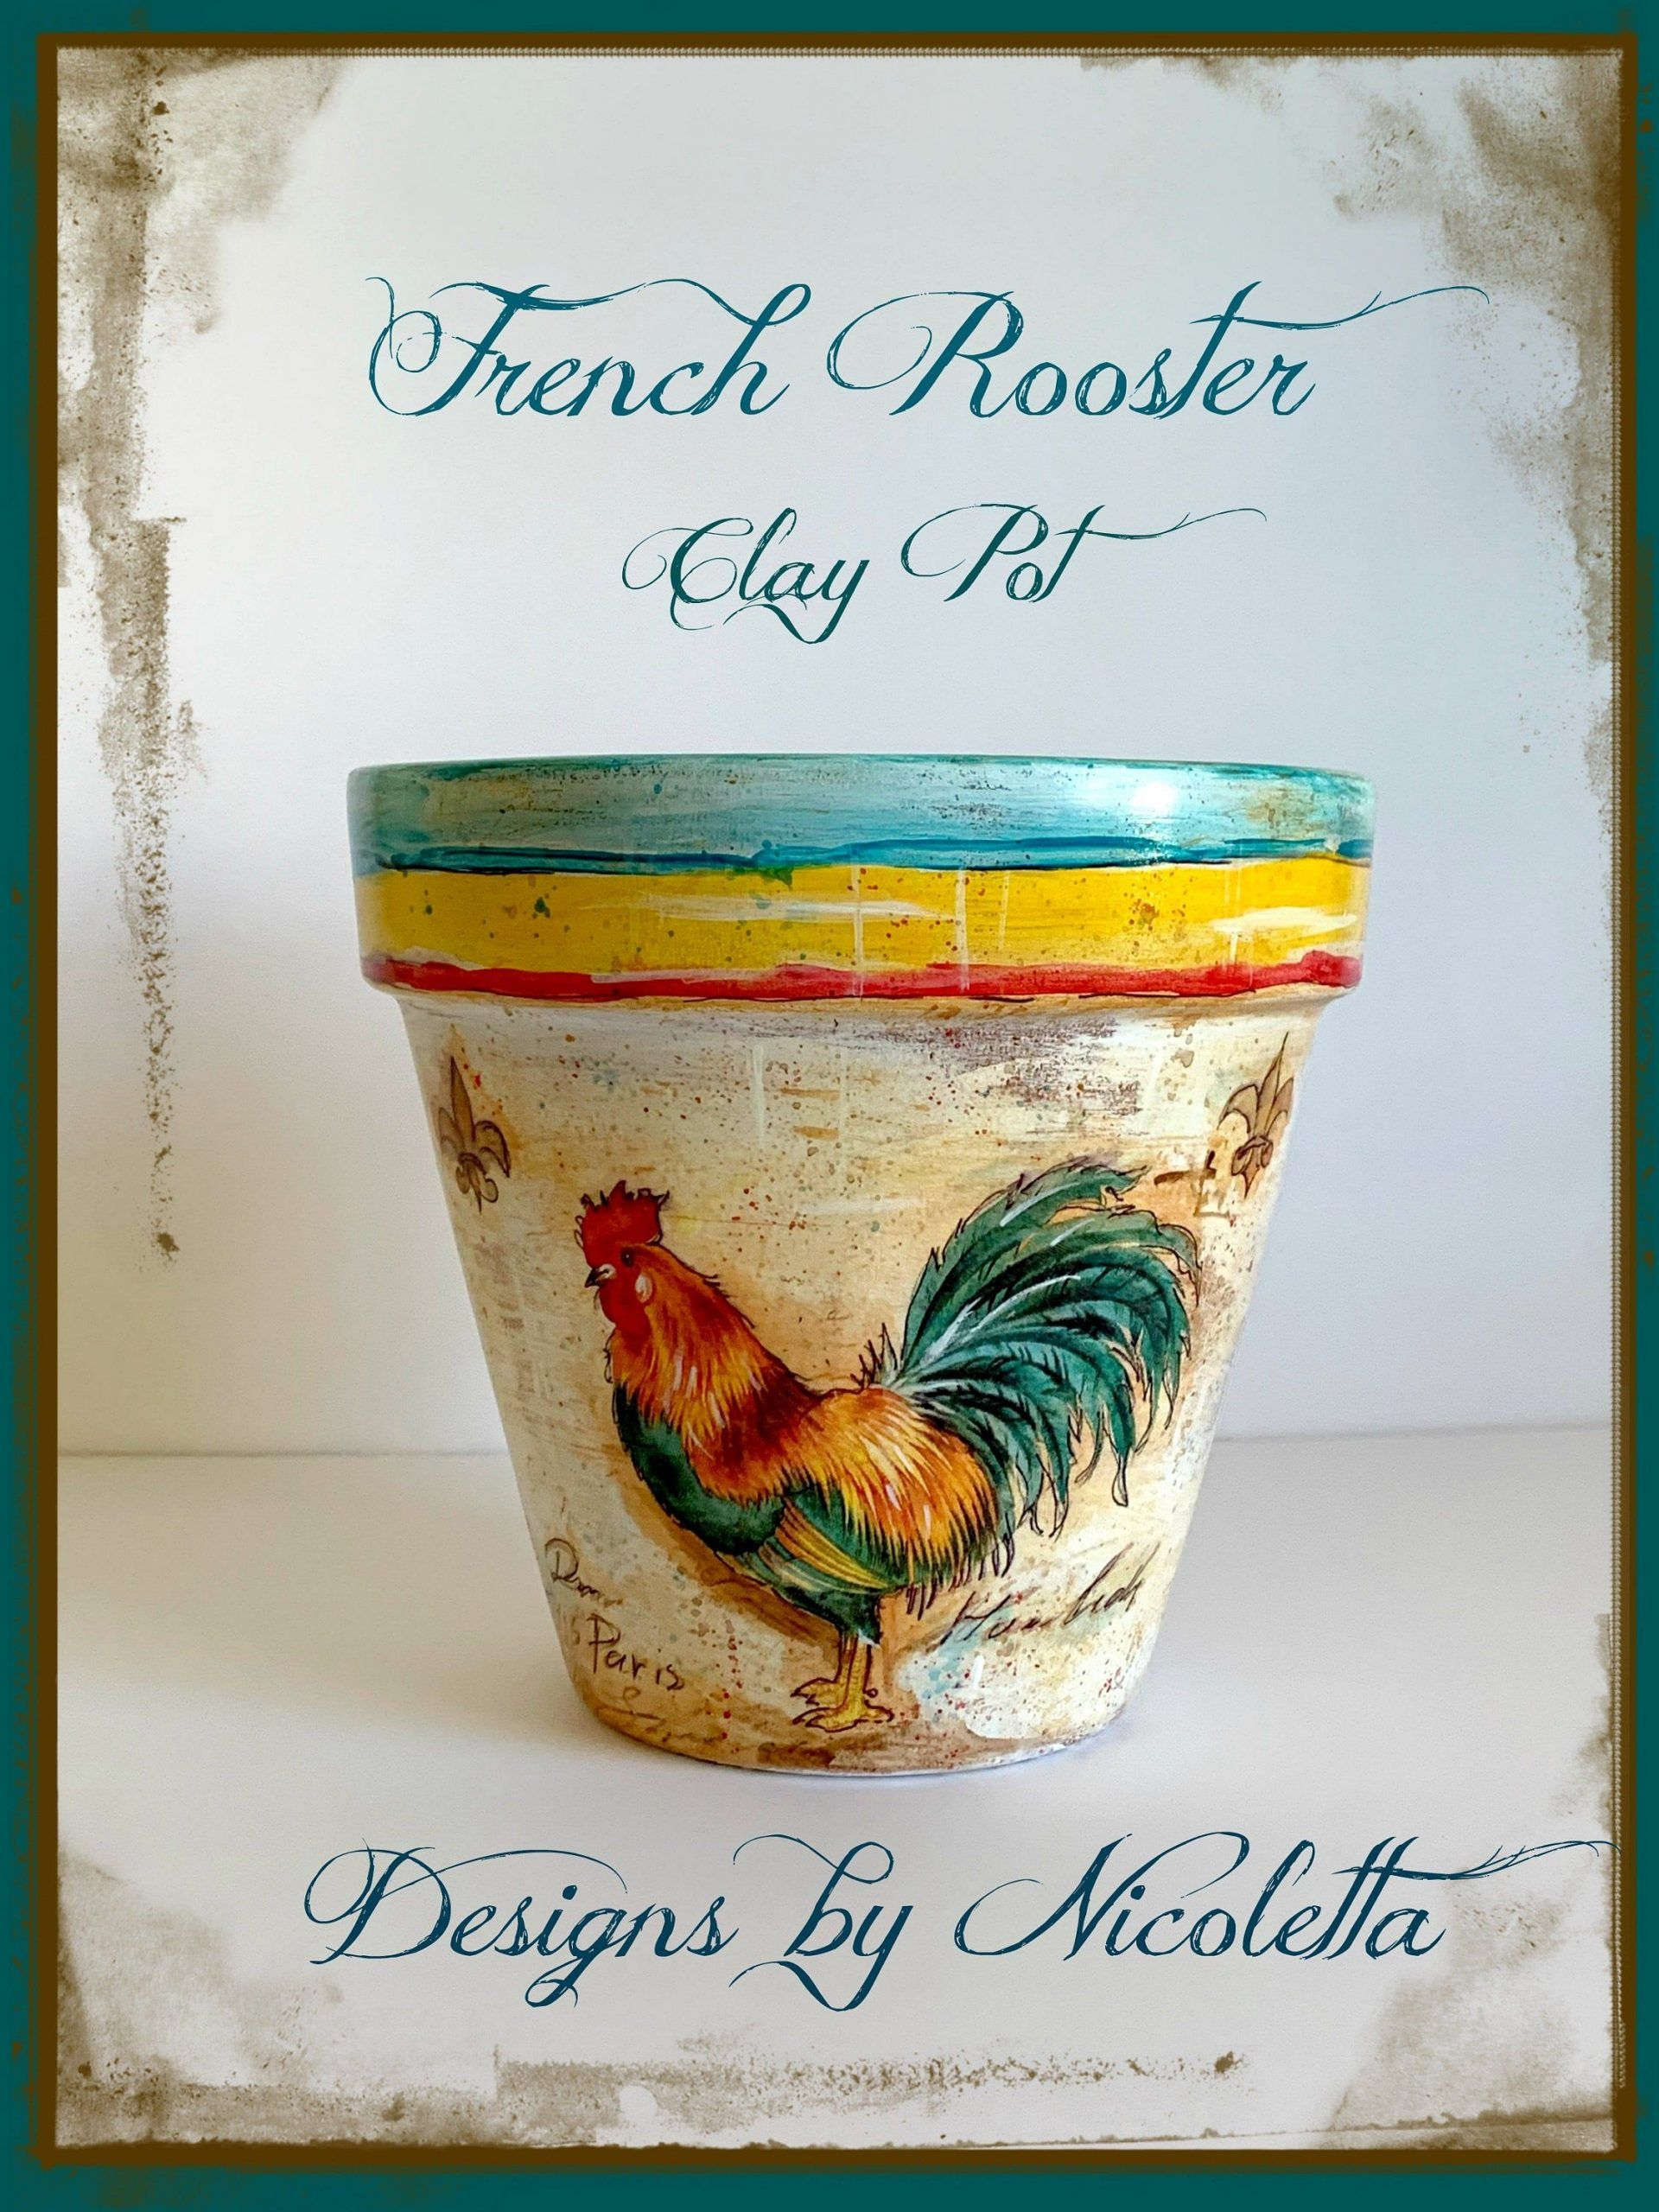 Painted and decoupaged terracotta plant pot with a French rooster design rustic planter unique clay pot gardening gift distressed 75clay